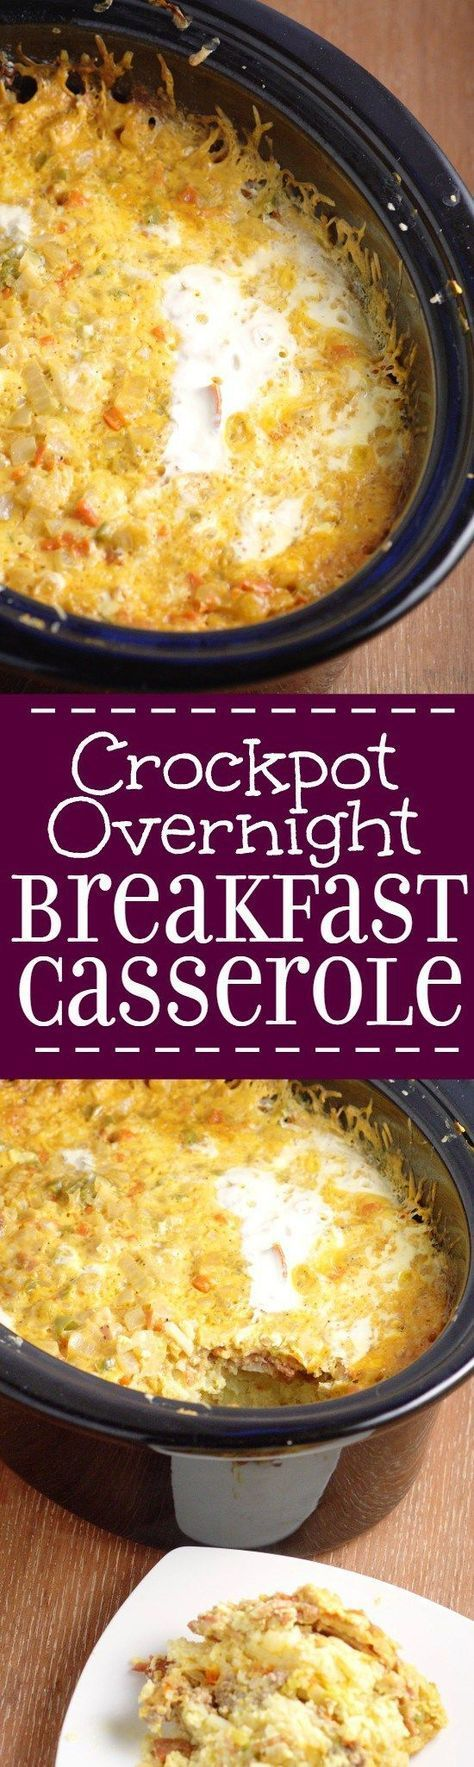 Crockpot Overnight Breakfast Casserole recipe is a classic make ahead breakfast casserole with eggs, sausage, bacon, hash browns, and cheese, Great for the holidays and a crowd.